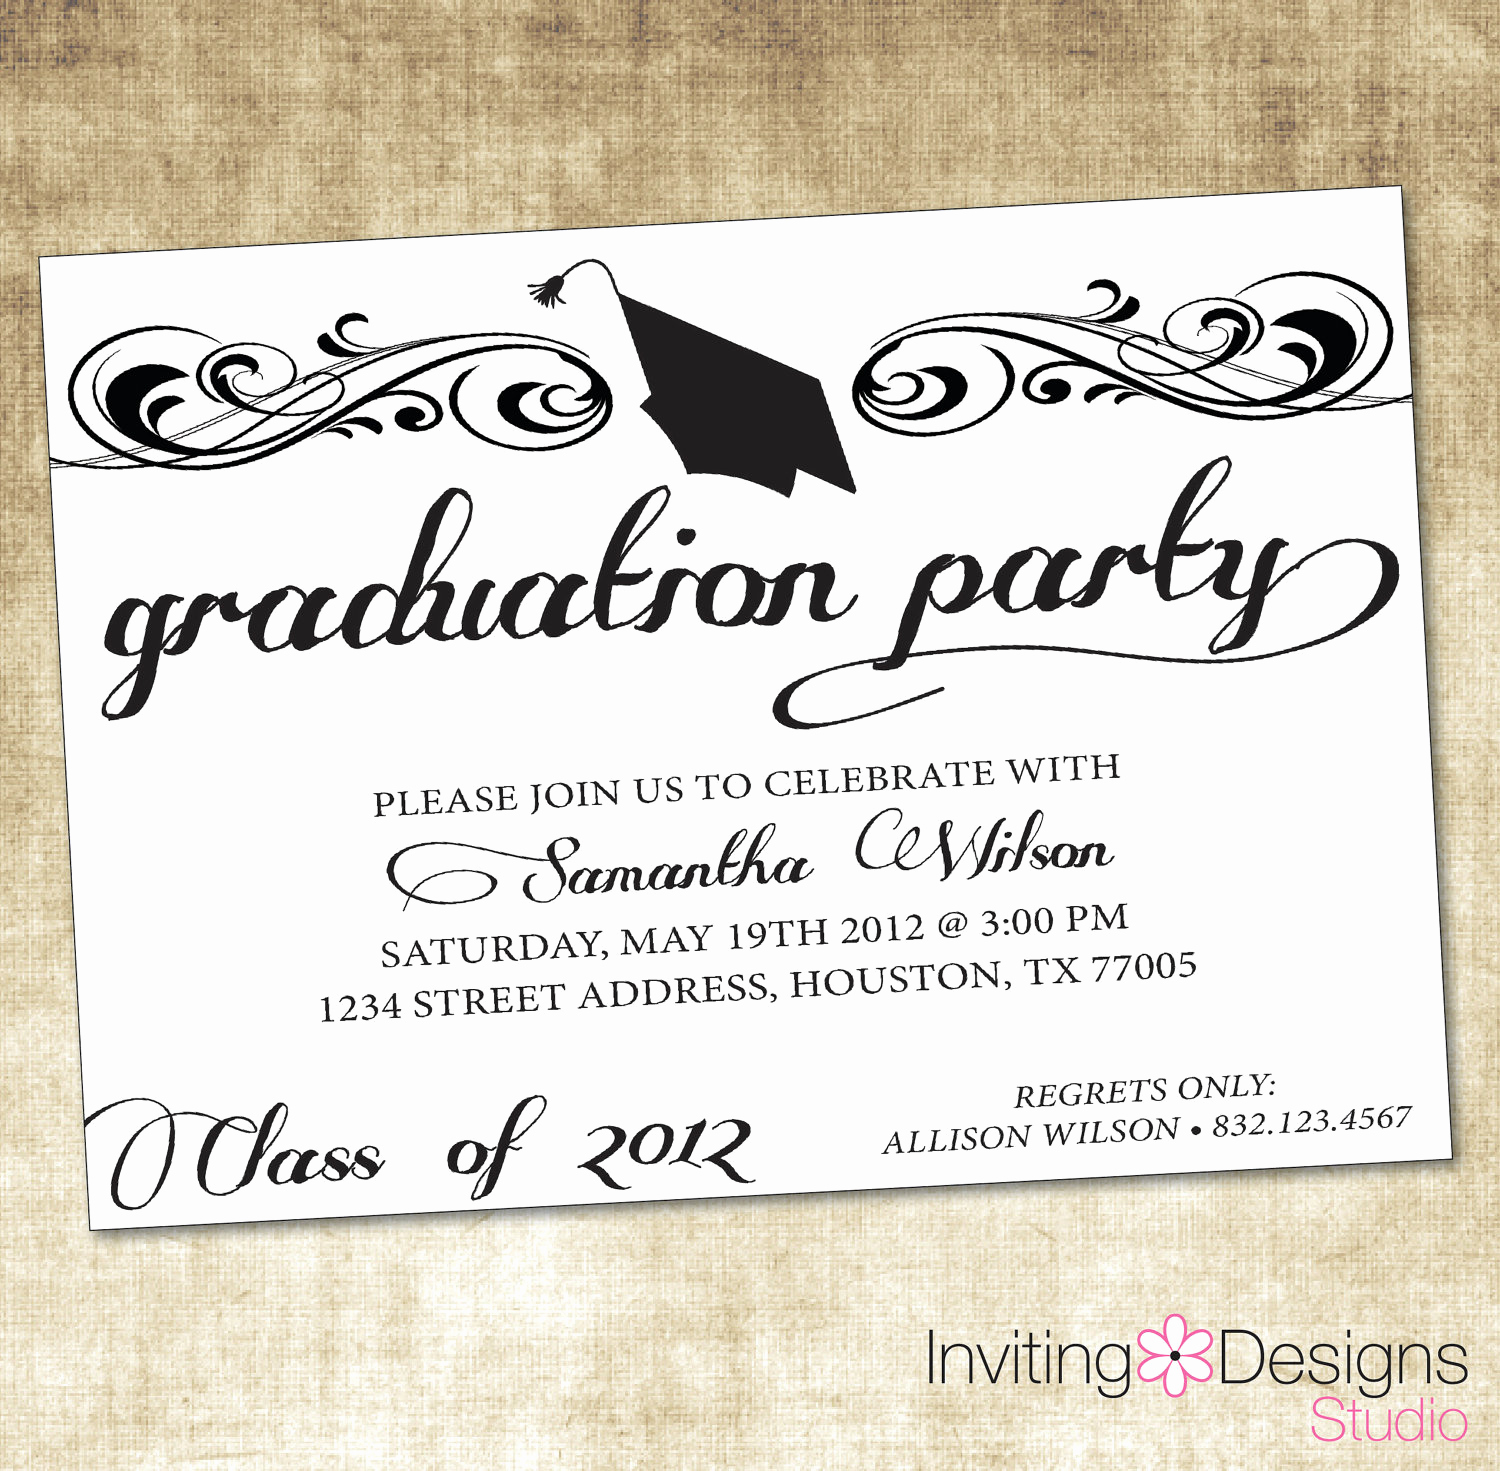 Graduation Party Invitations Templates Best Of Quotes for Graduation Party Invitations Quotesgram